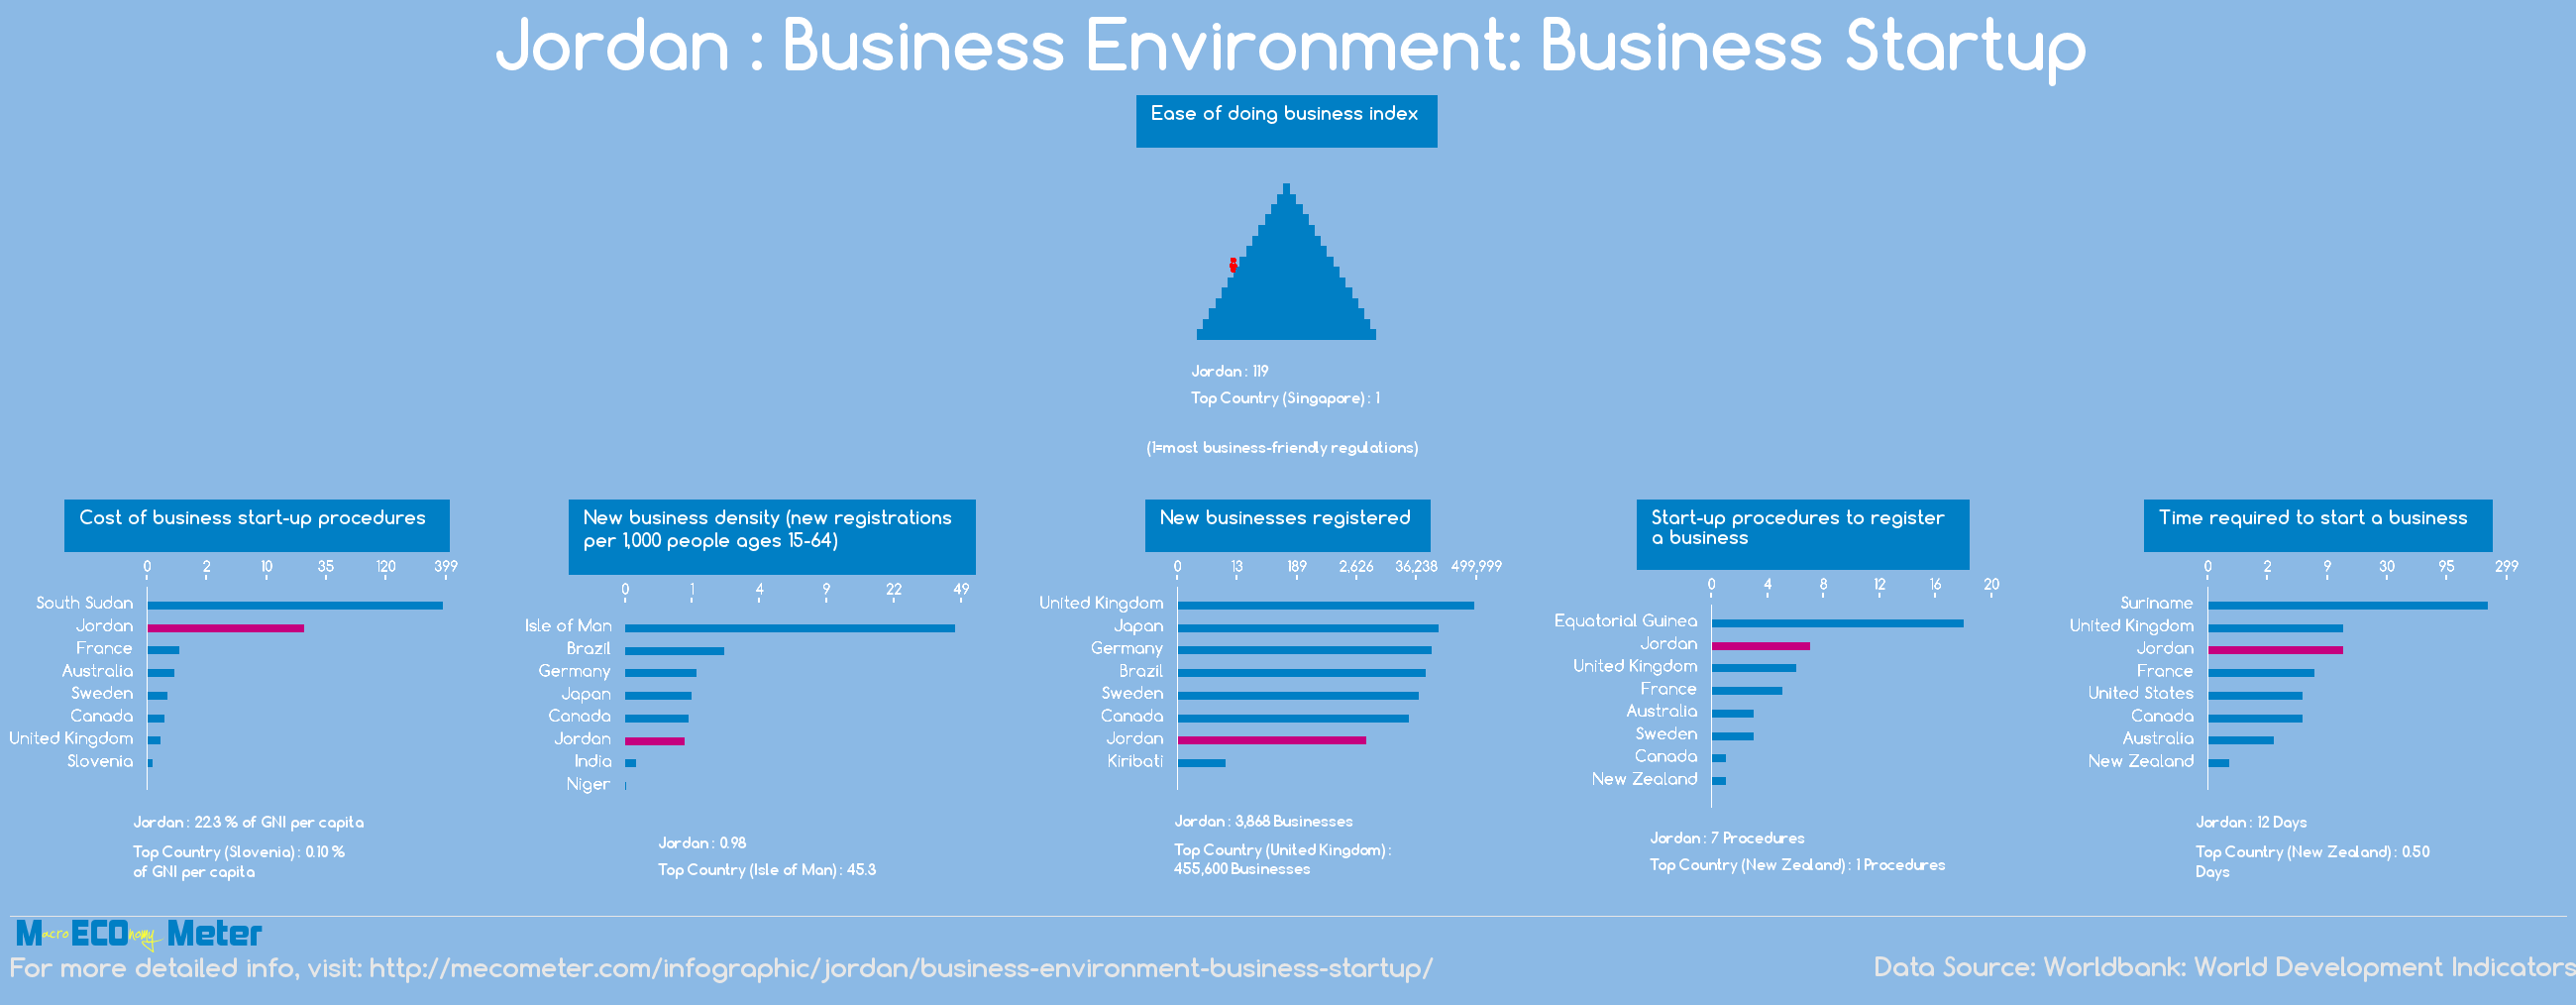 Jordan : Business Environment: Business Startup